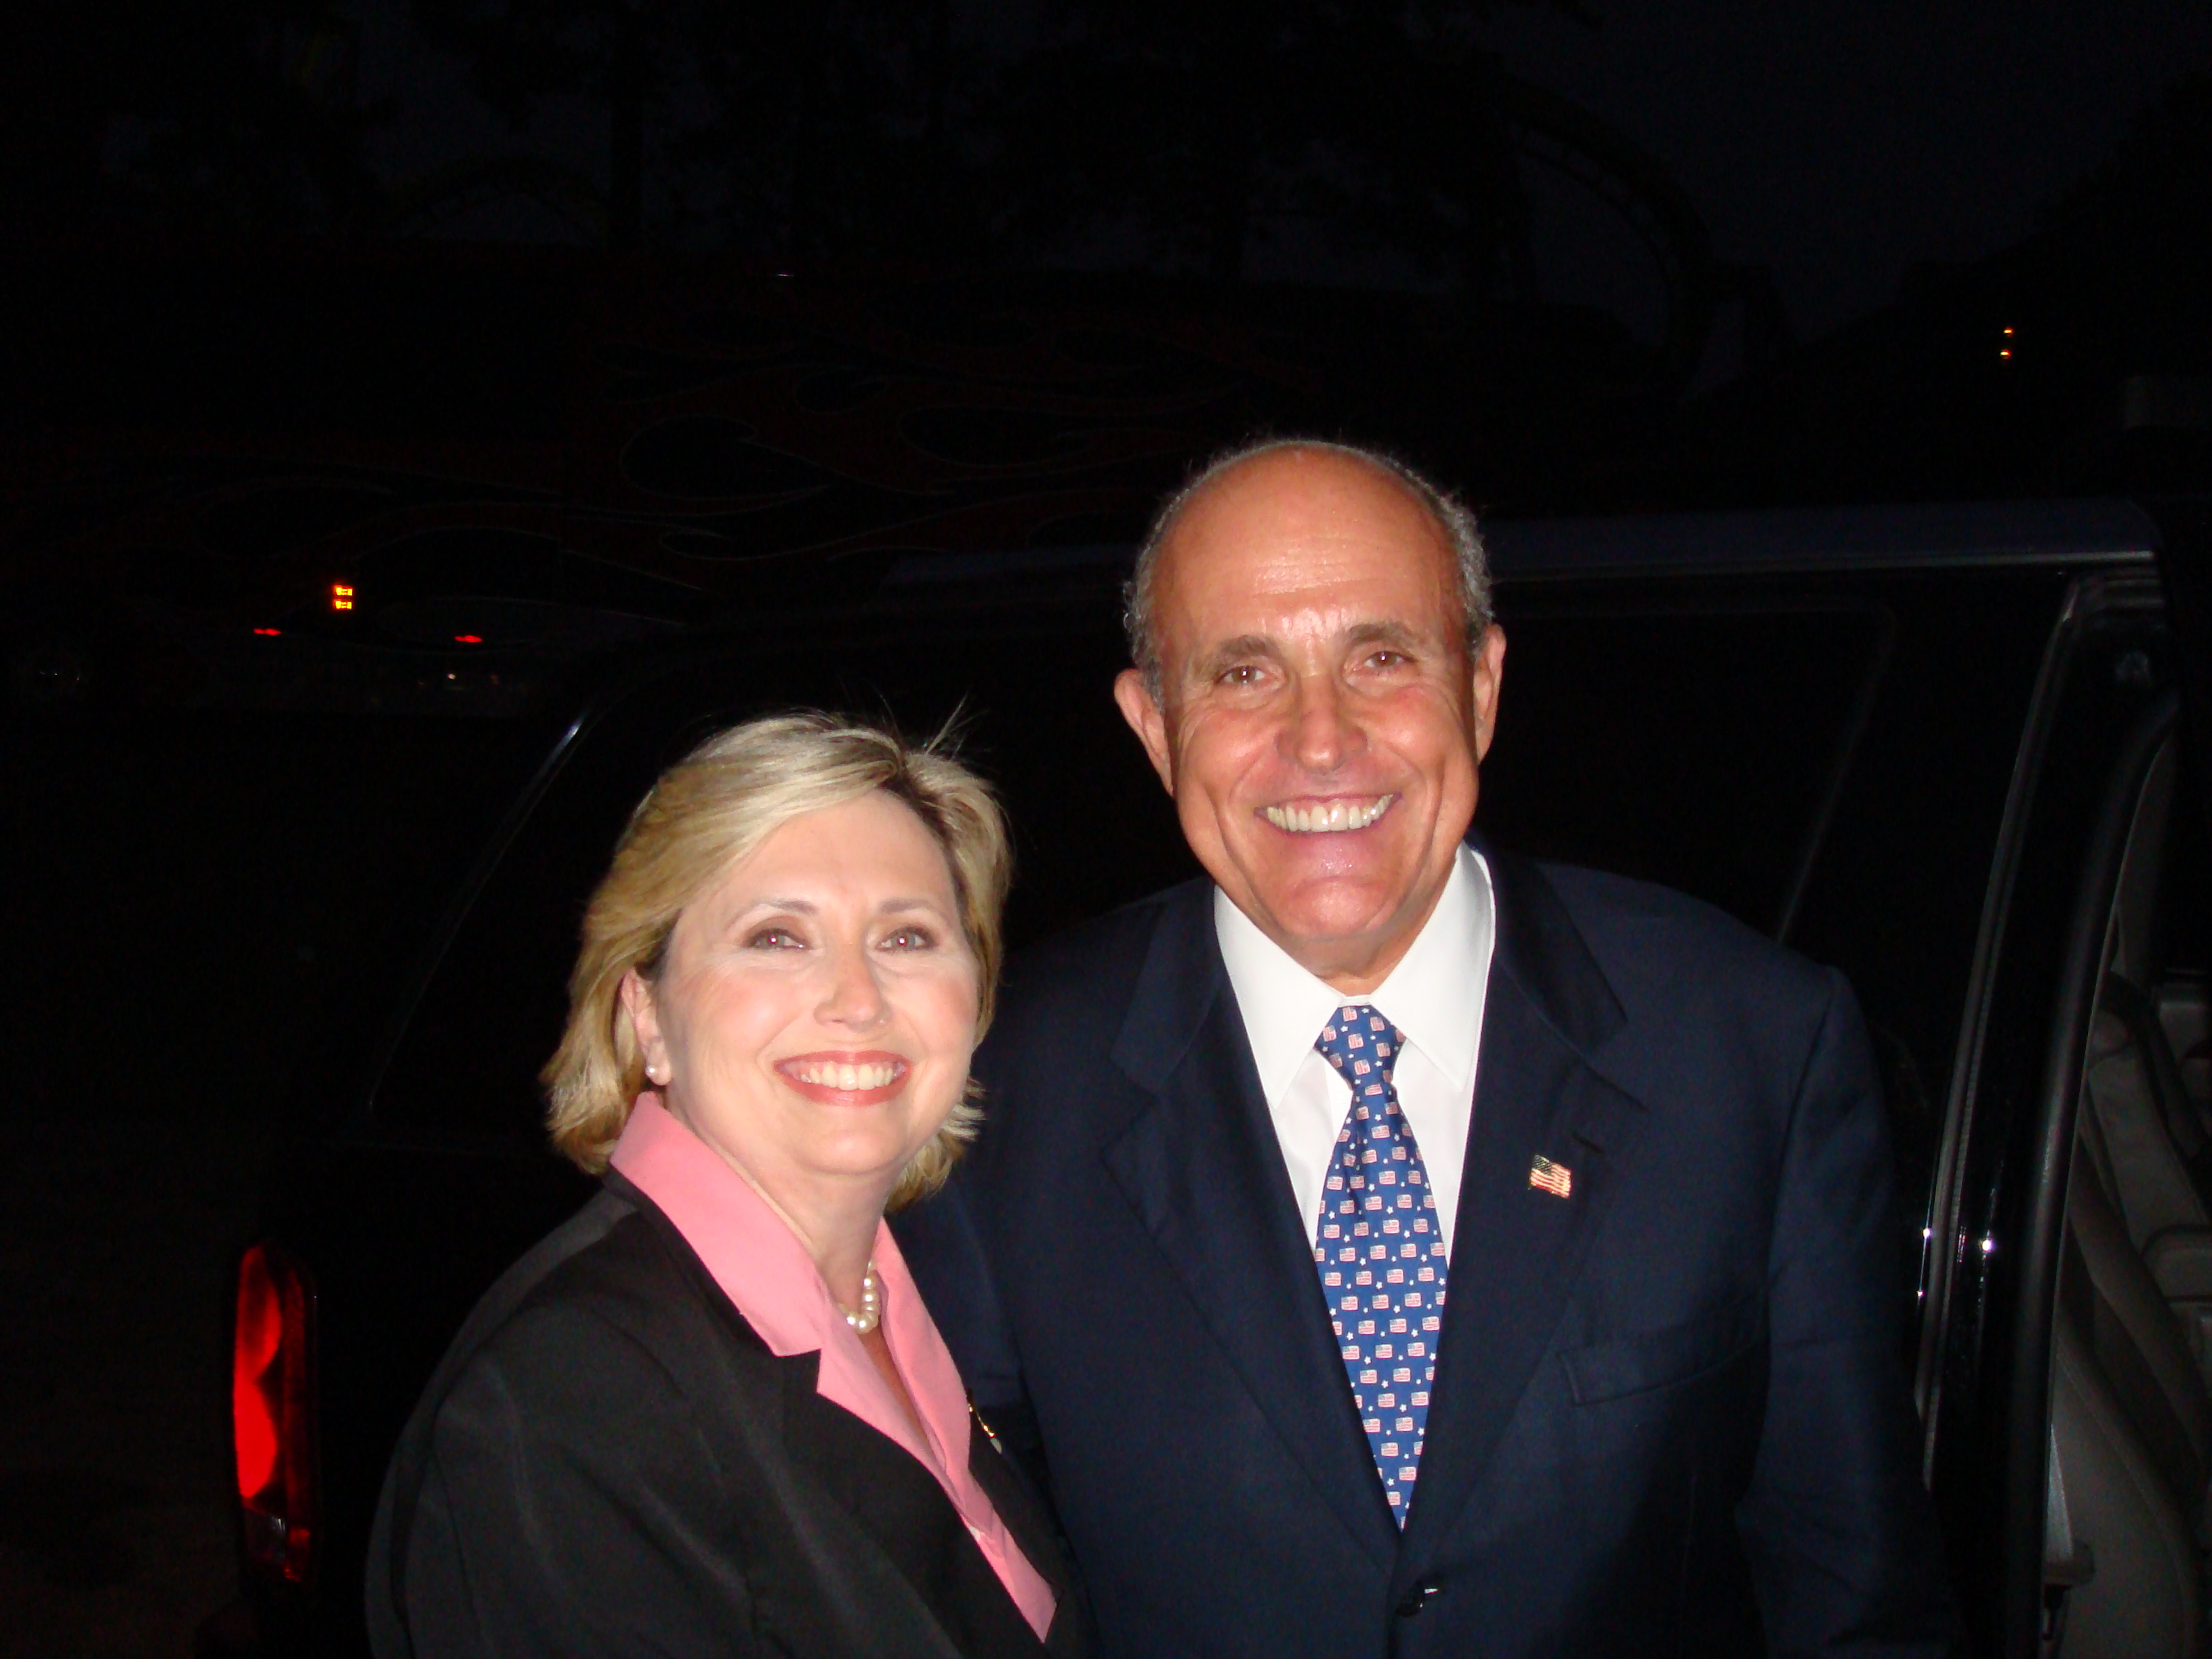 Teresa Barnwell with Former Mayor of New York City Rudy Giuliani